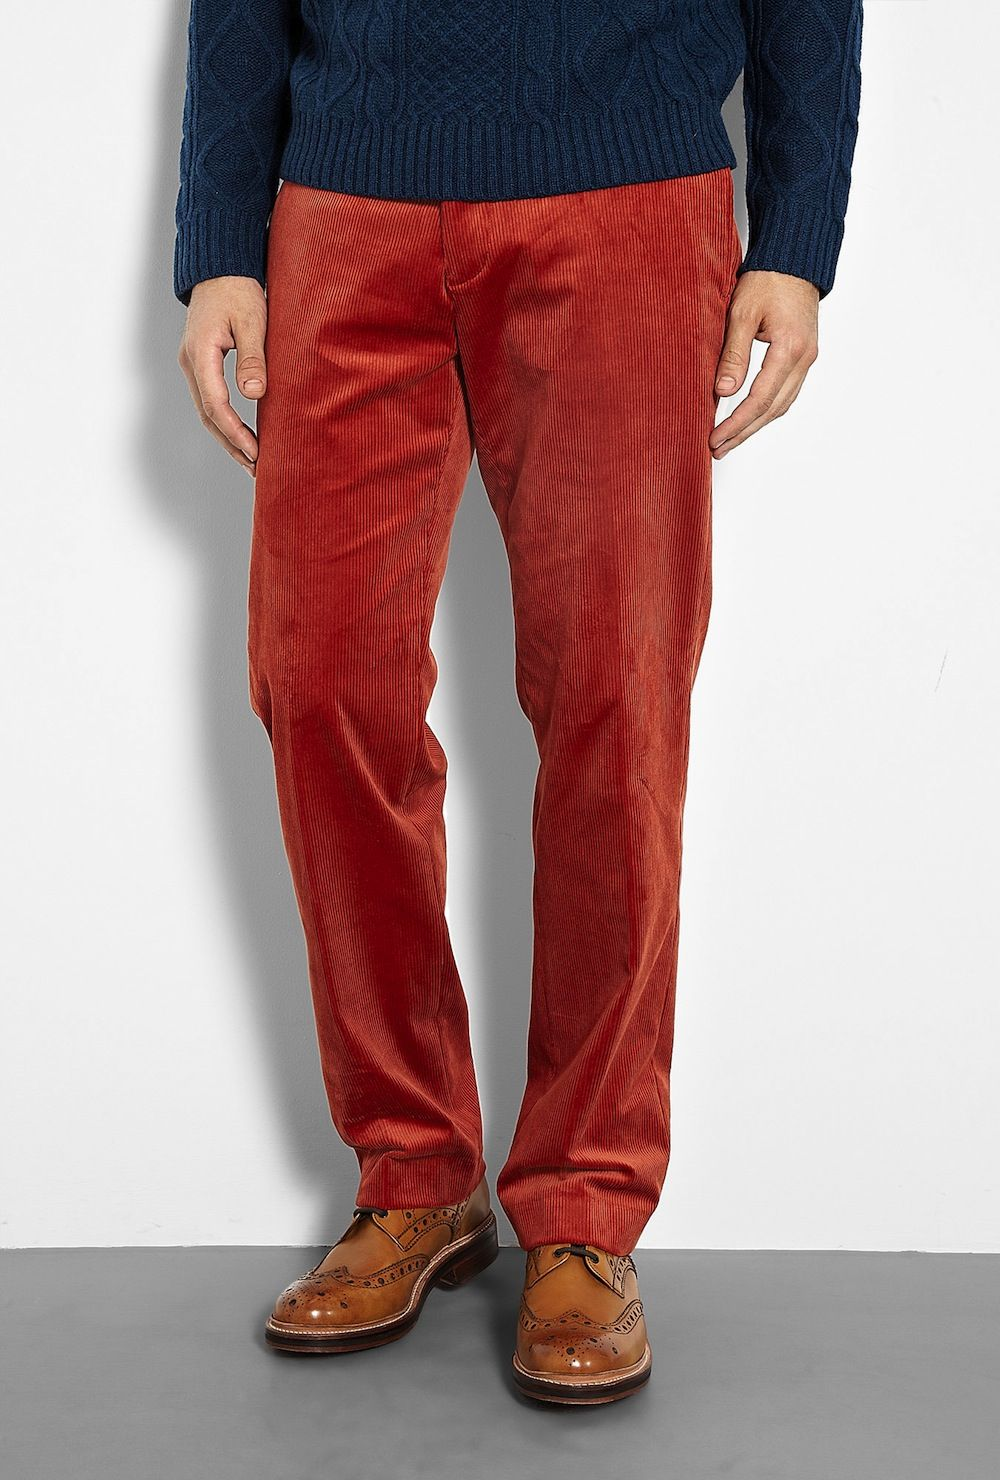 3b27eea40ed2 Polo Ralph Lauren Burnt Orange Corduroy Trousers